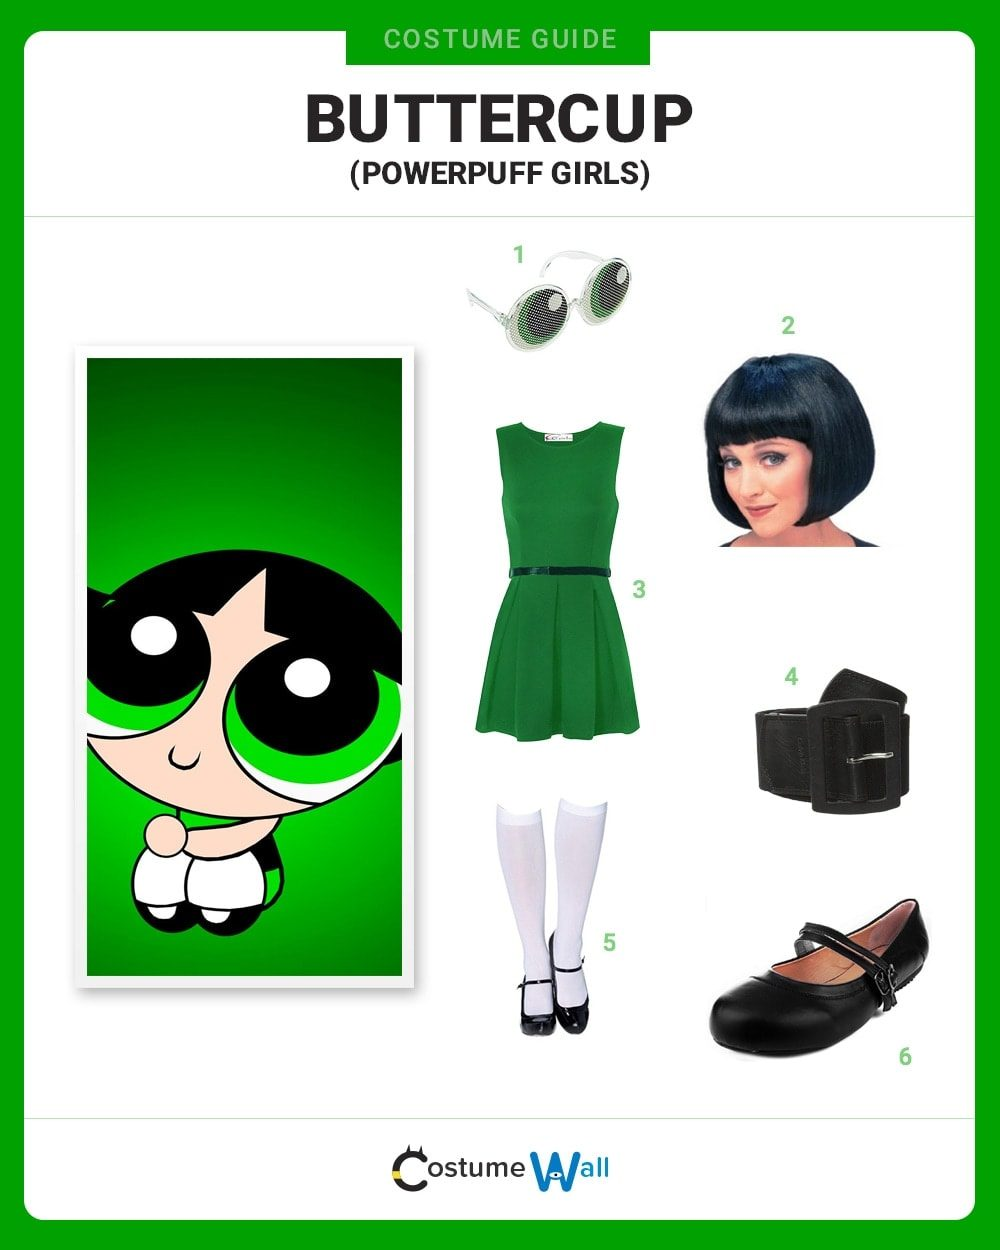 dress like buttercup costume | halloween and cosplay guides